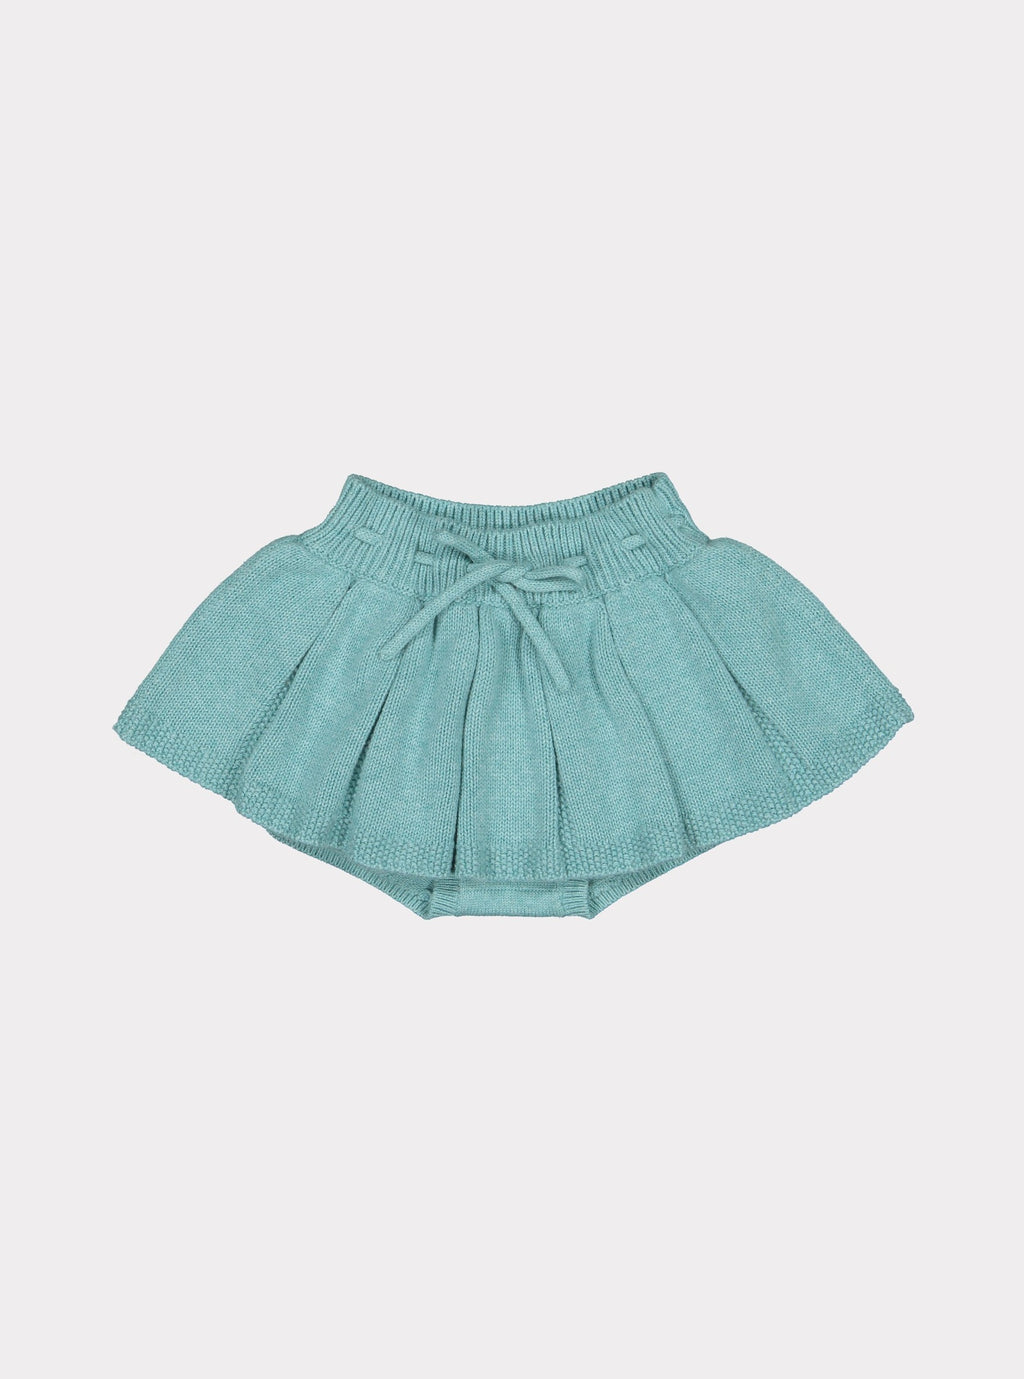 Roseleigh Bloomer Skirt, Pine Green